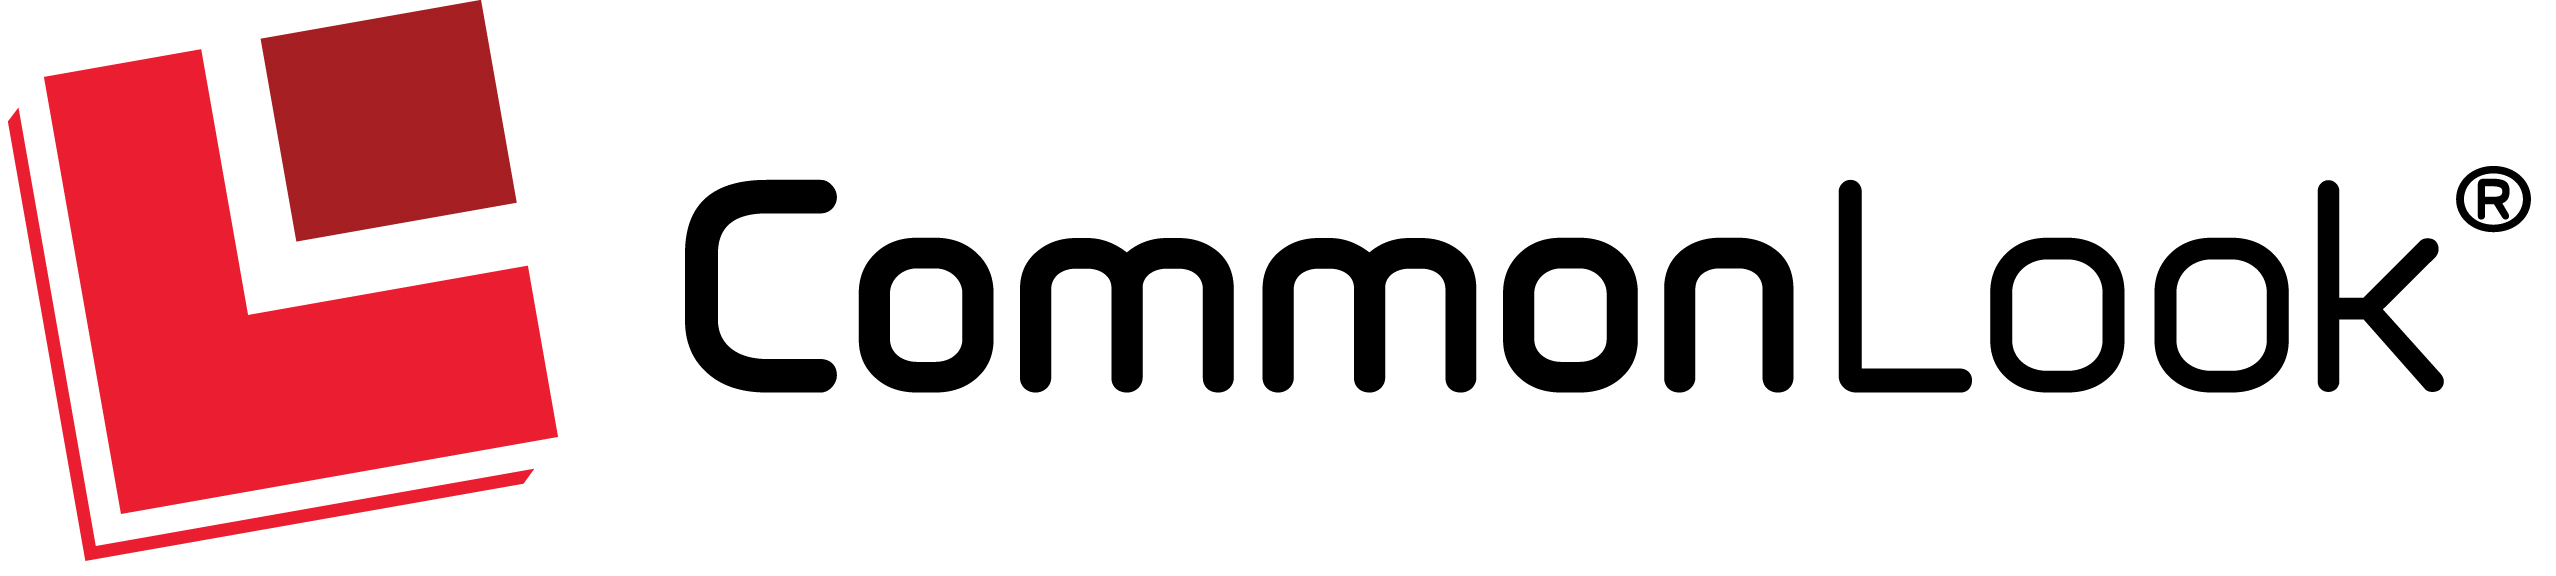 CommonLook Logo